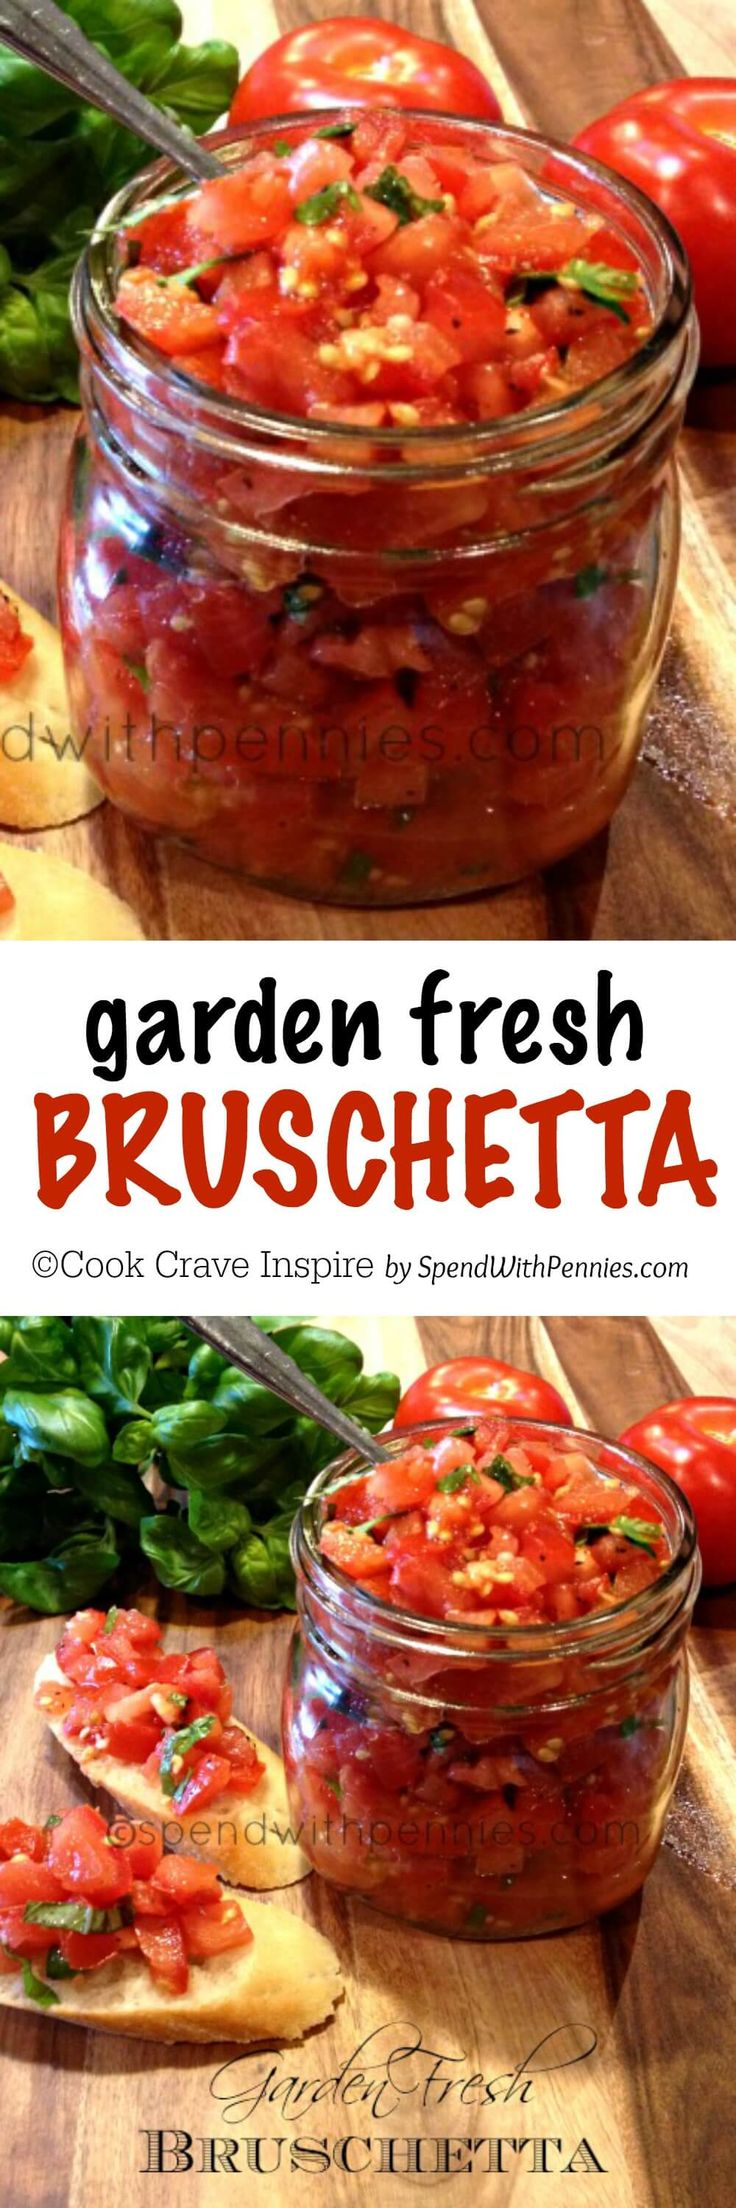 "Garden Fresh Bruschetta! Perfect summer appetizer and deliciously simple to make! Perfect as an appetizer & great over chicken. Use the best tomatoes you can find & fresh basil!                                                                                                                    <button class=""Button Module borderless hasText vaseButton"" type=""button"">        <span class=""buttonText"">                          More         </span>          </button>"